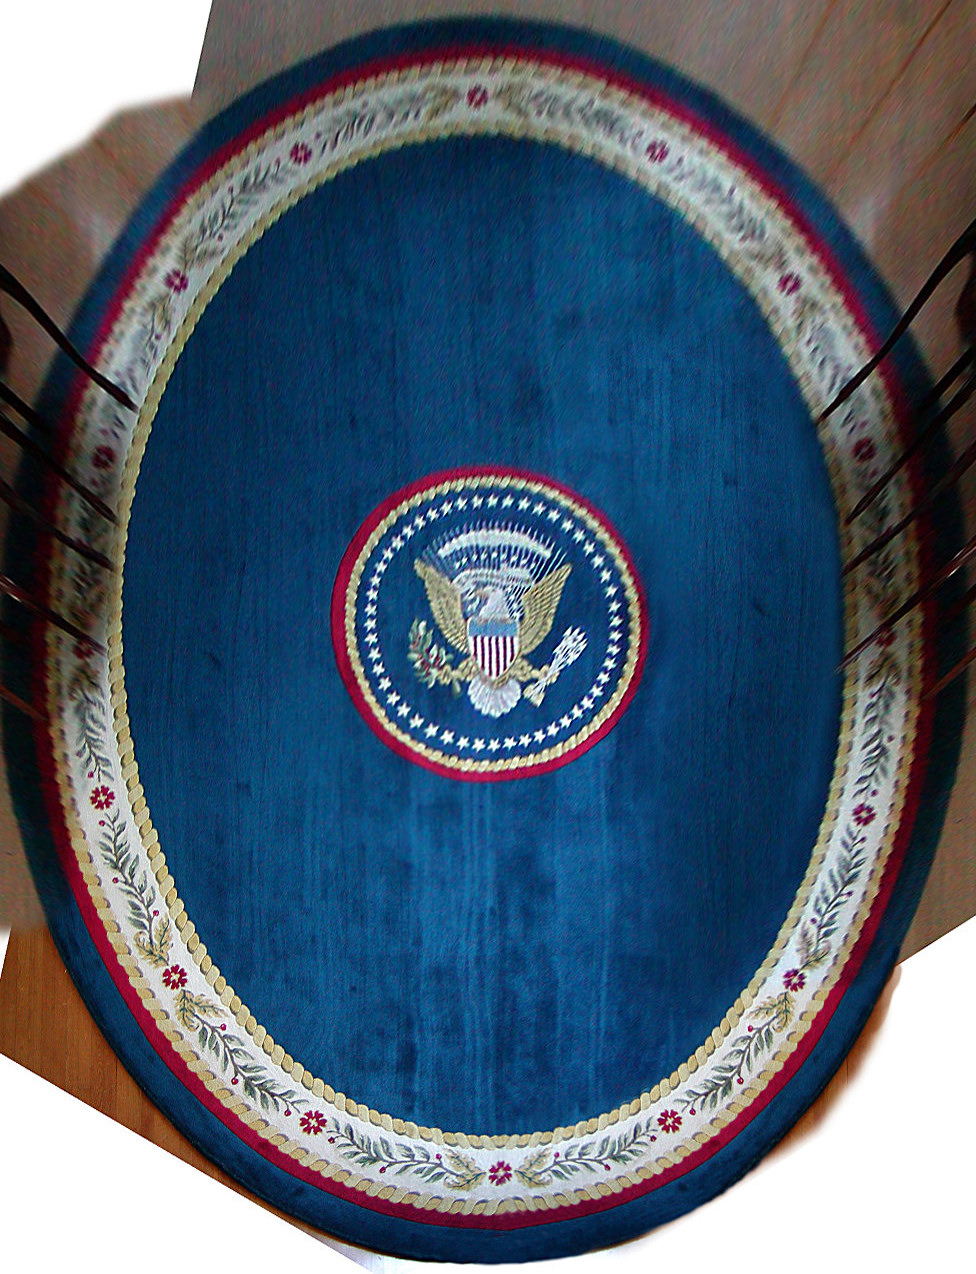 The Oval Office Carpet Carpet Vidalondon